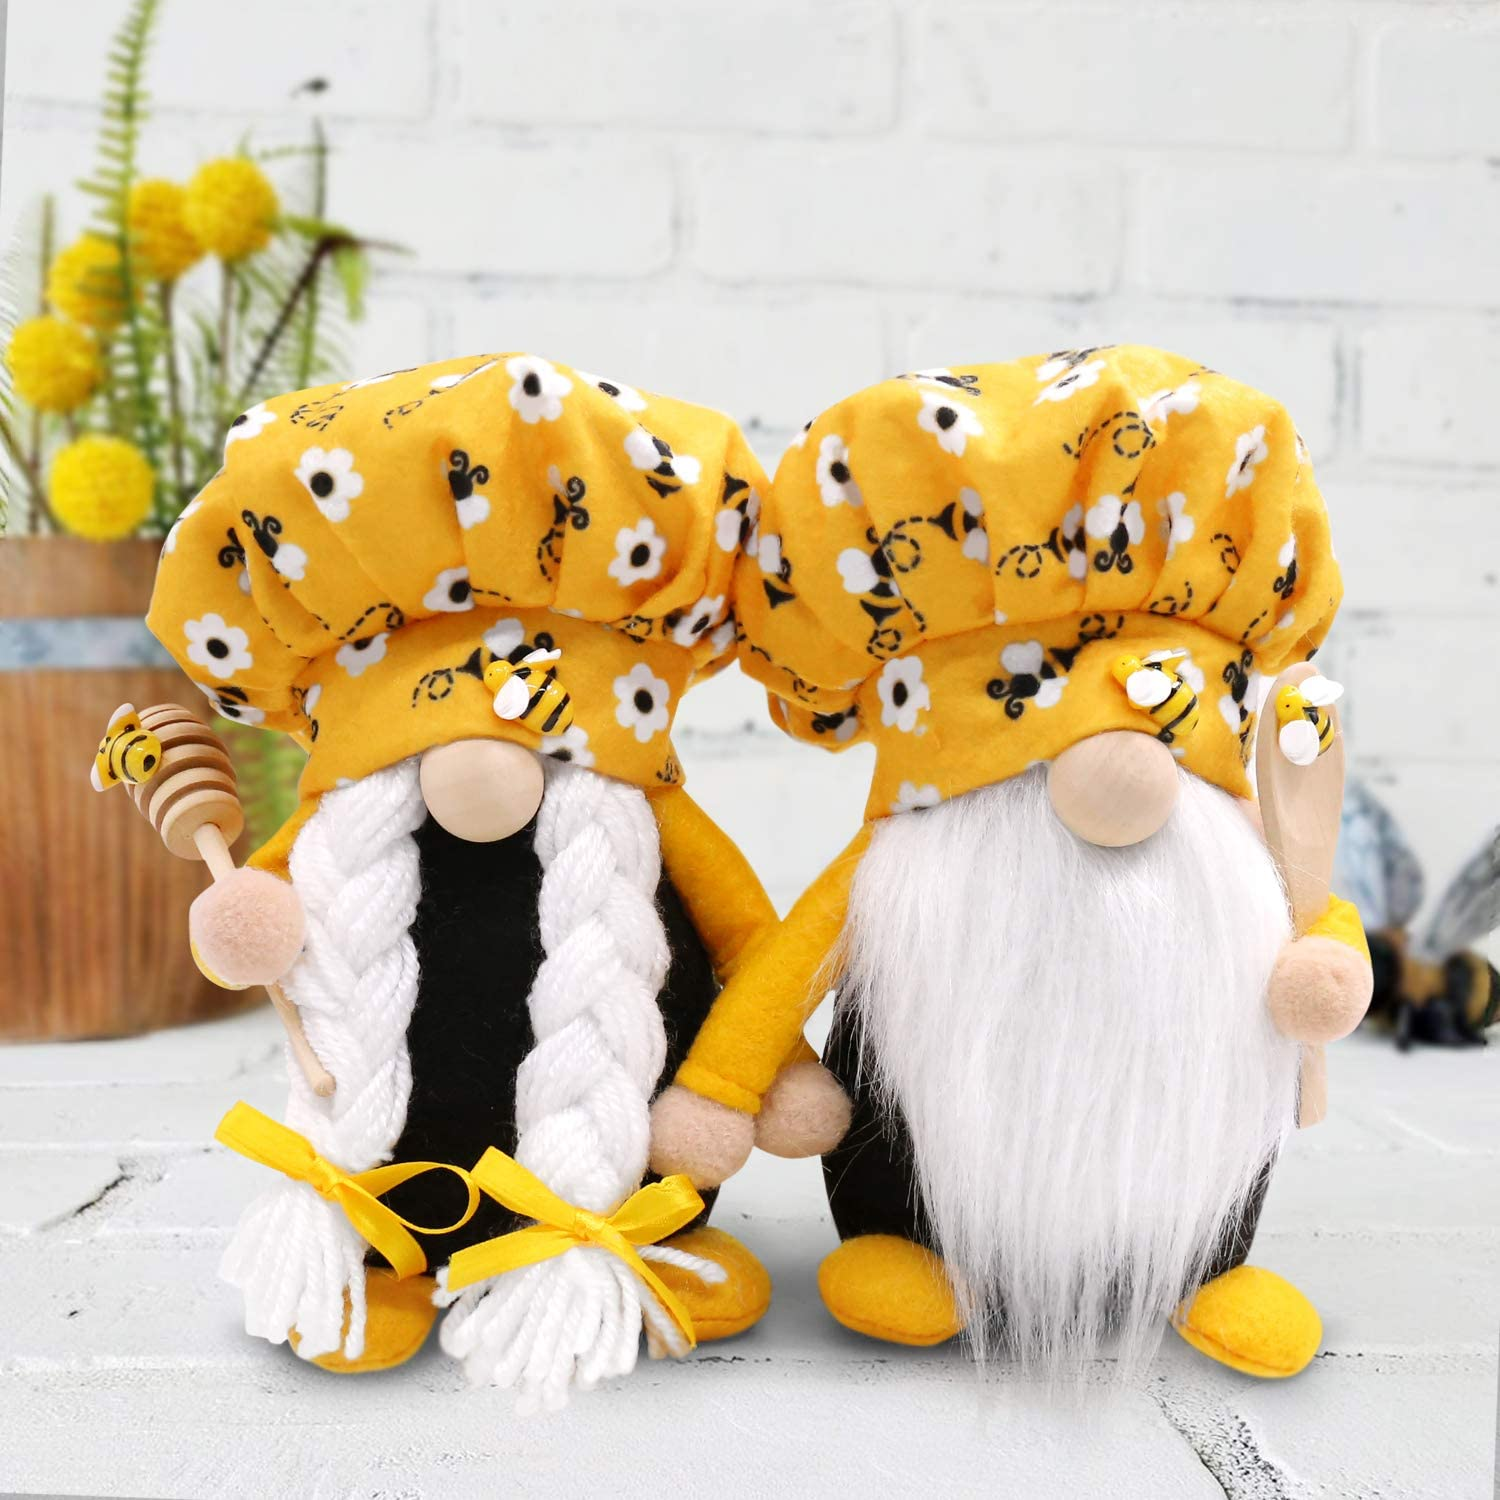 CiyvoLyeen Bumble Bee Chef Gnome Scandinavian Tomte Nisse Swedish Honey Bee Elf Home Farmhouse Kitchen Decor Bee Shelf Tiered Tray Decorations, Set of 2